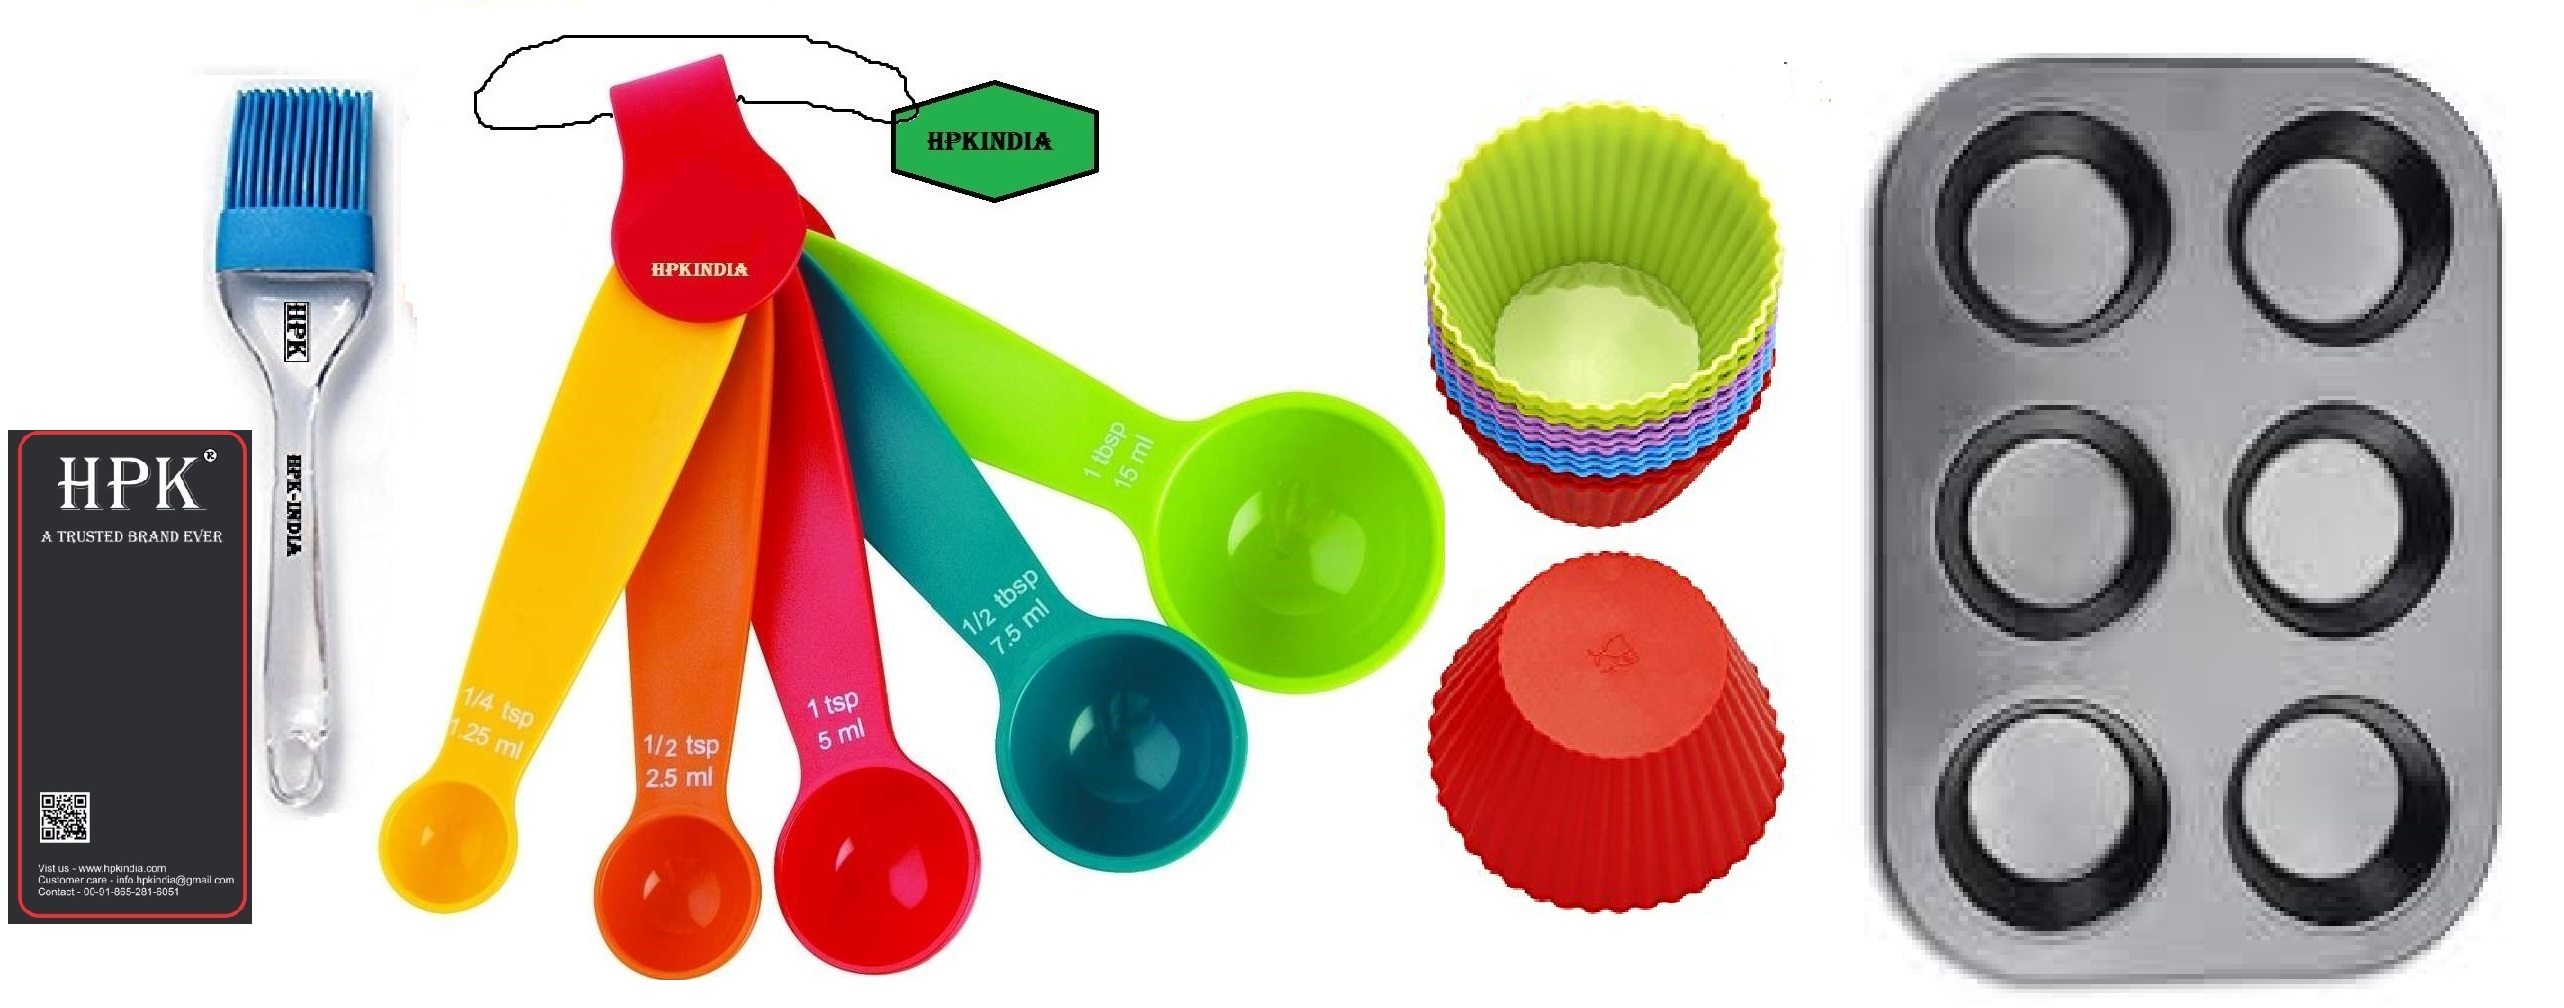 hpk-brsuh round molds muffin tray measuring spoons  round  molds Set